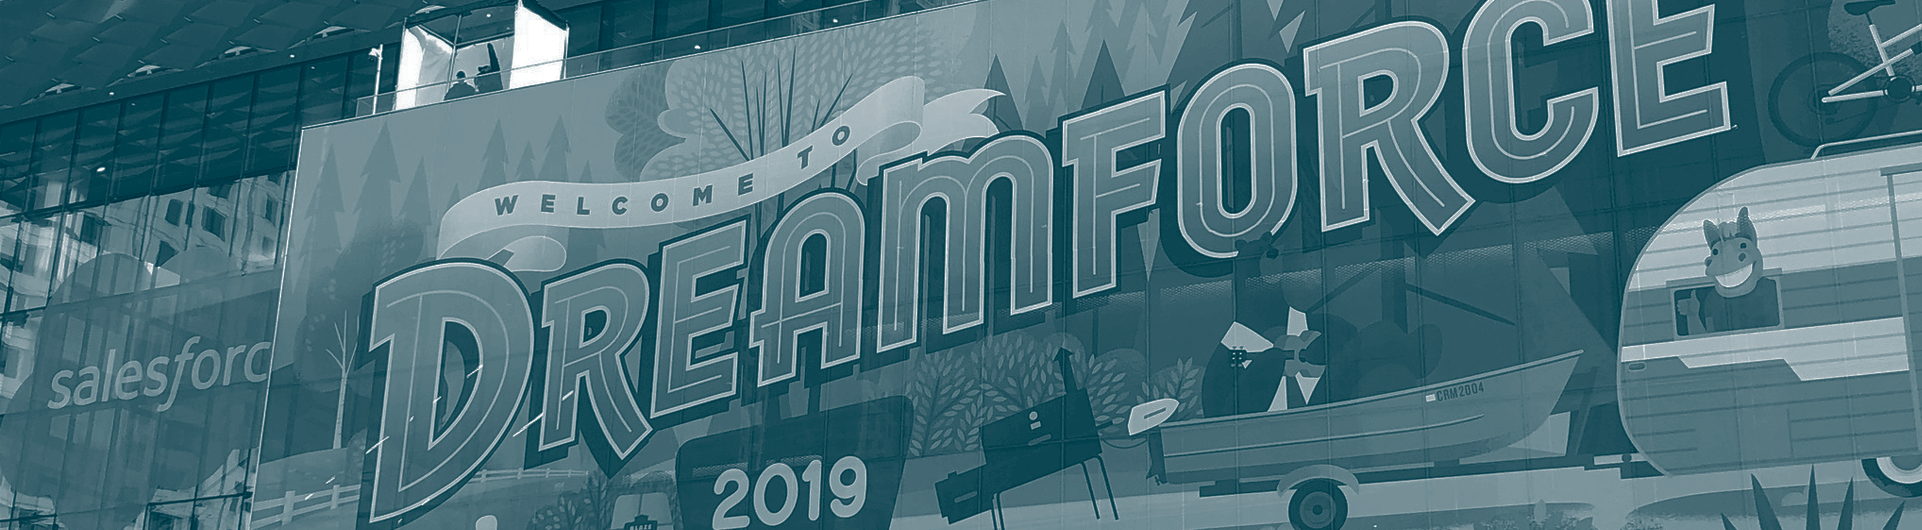 San Francisco, Dreamforce 2019